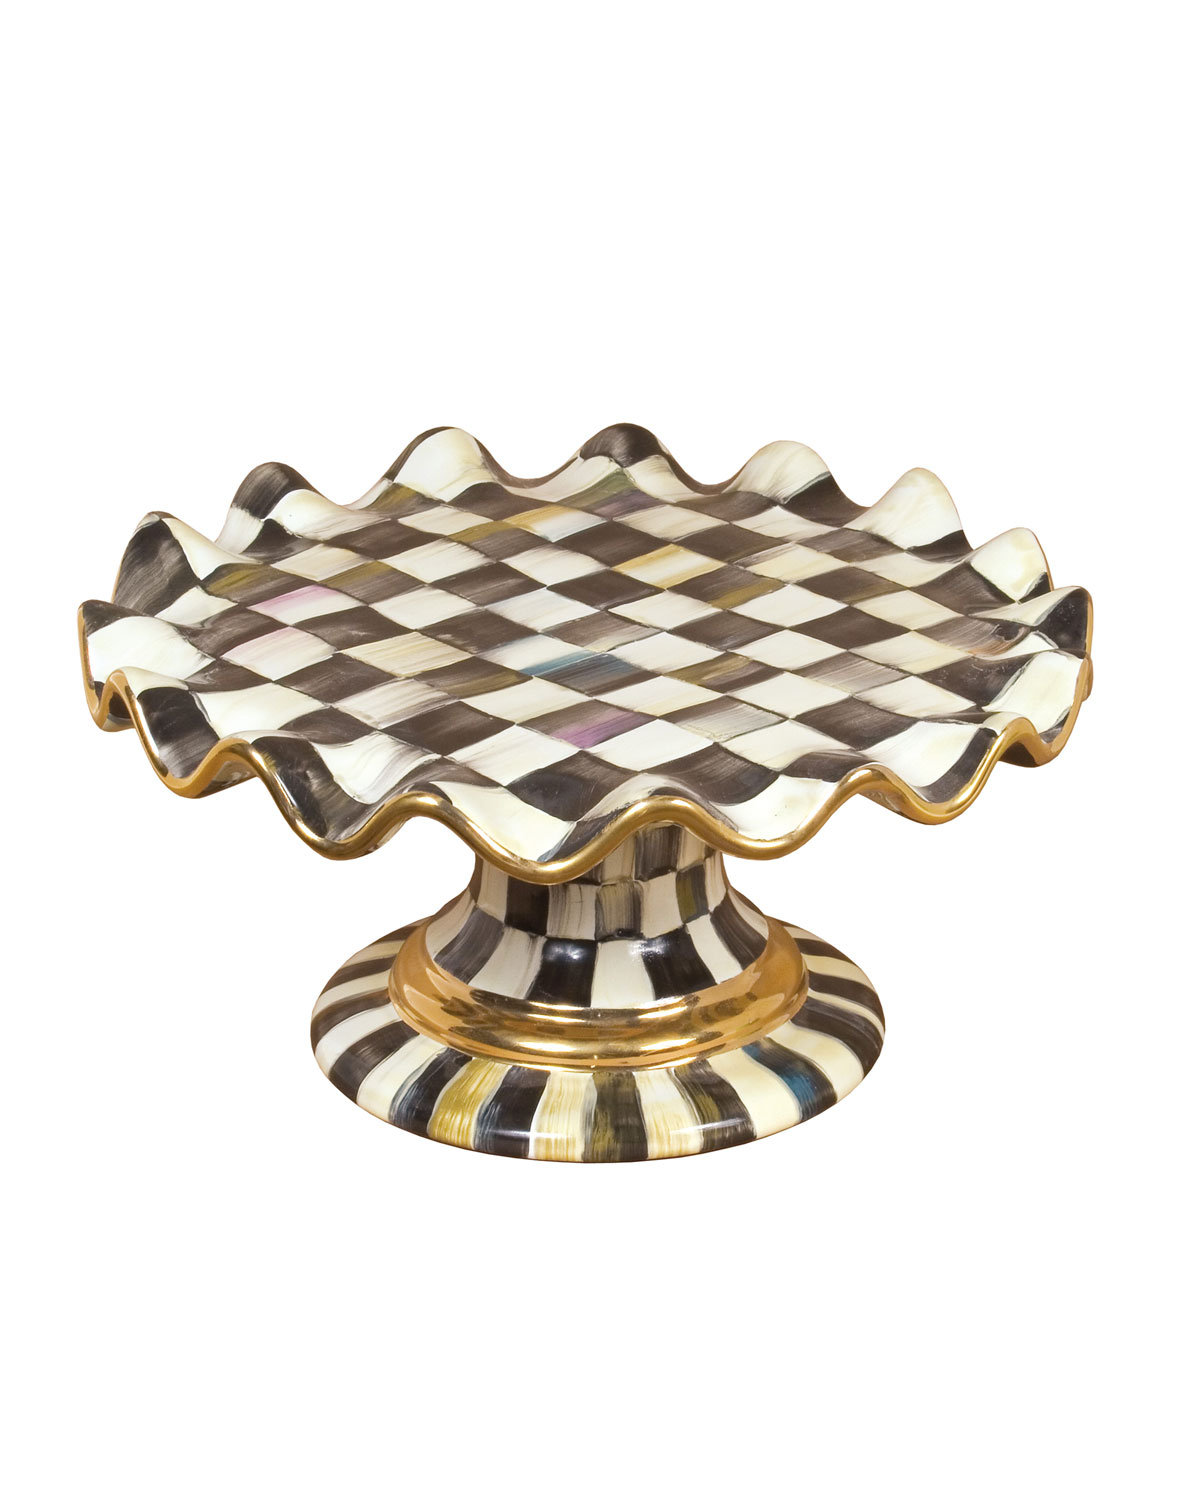 Courtly Check Cake Stand